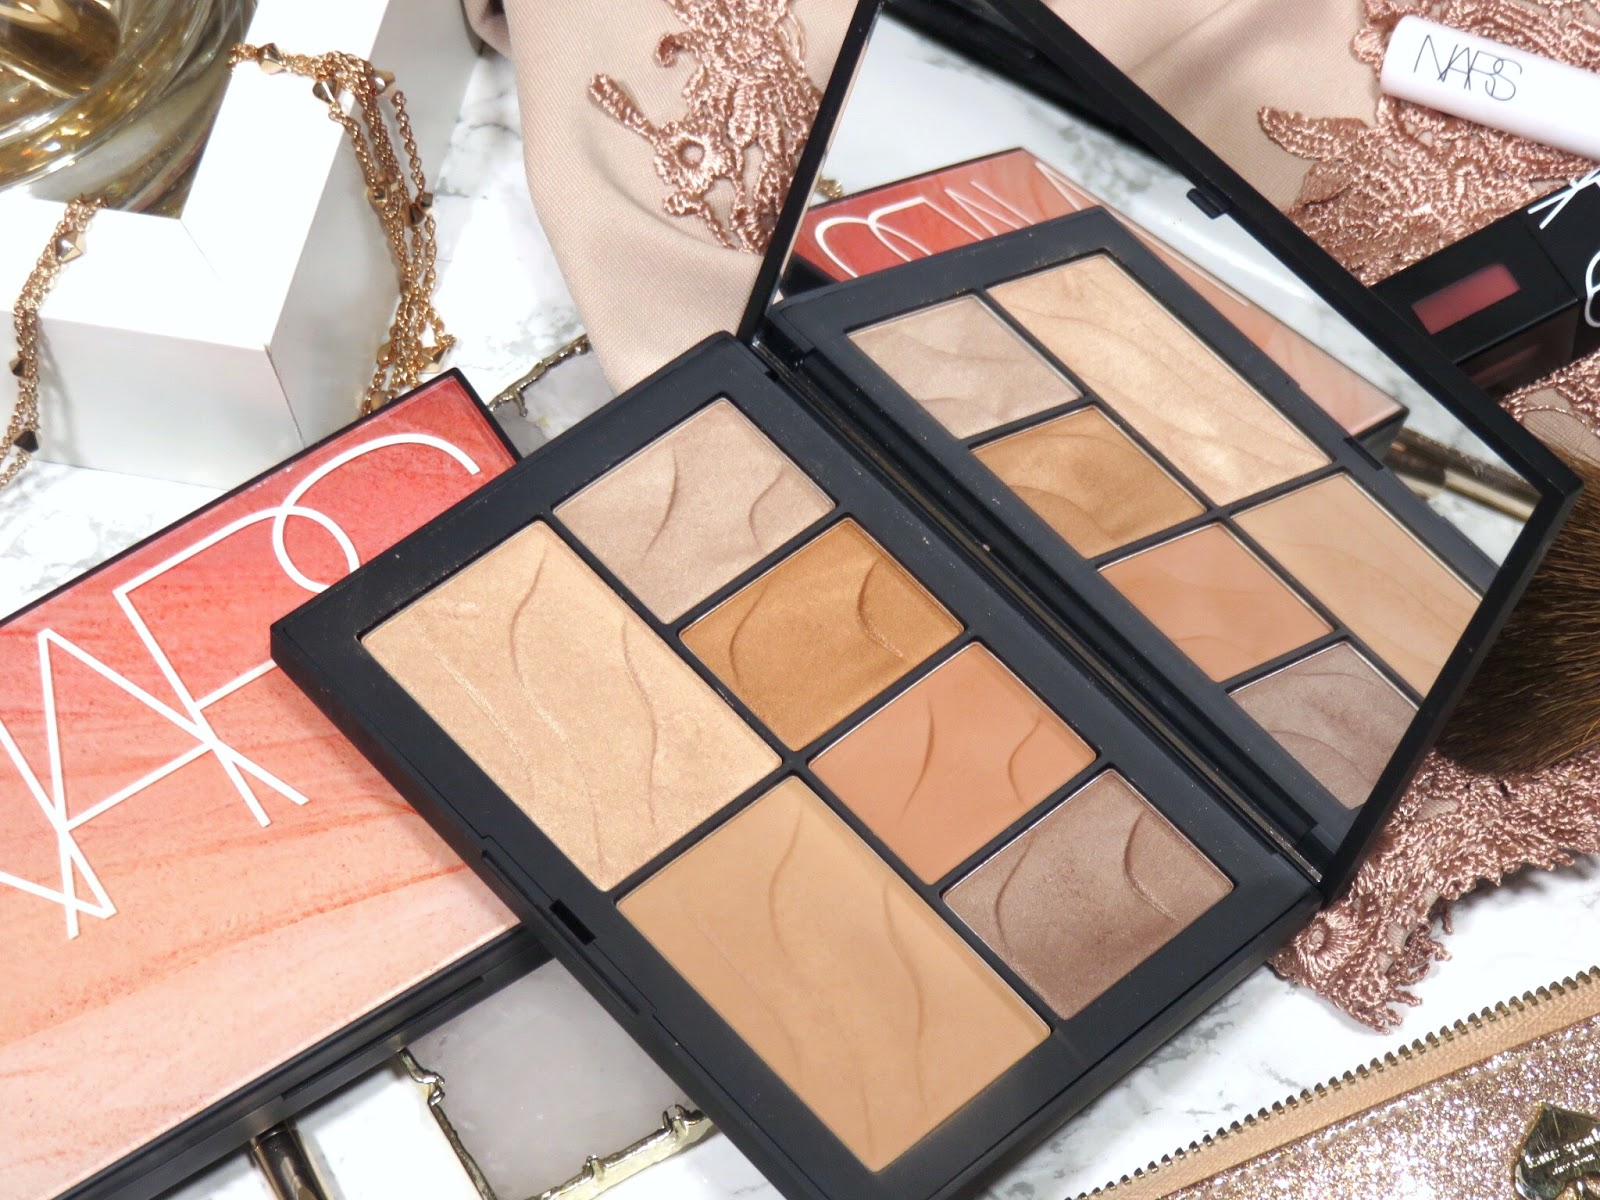 Review | NARS Summer Lights & Hot Nights Face Palettes